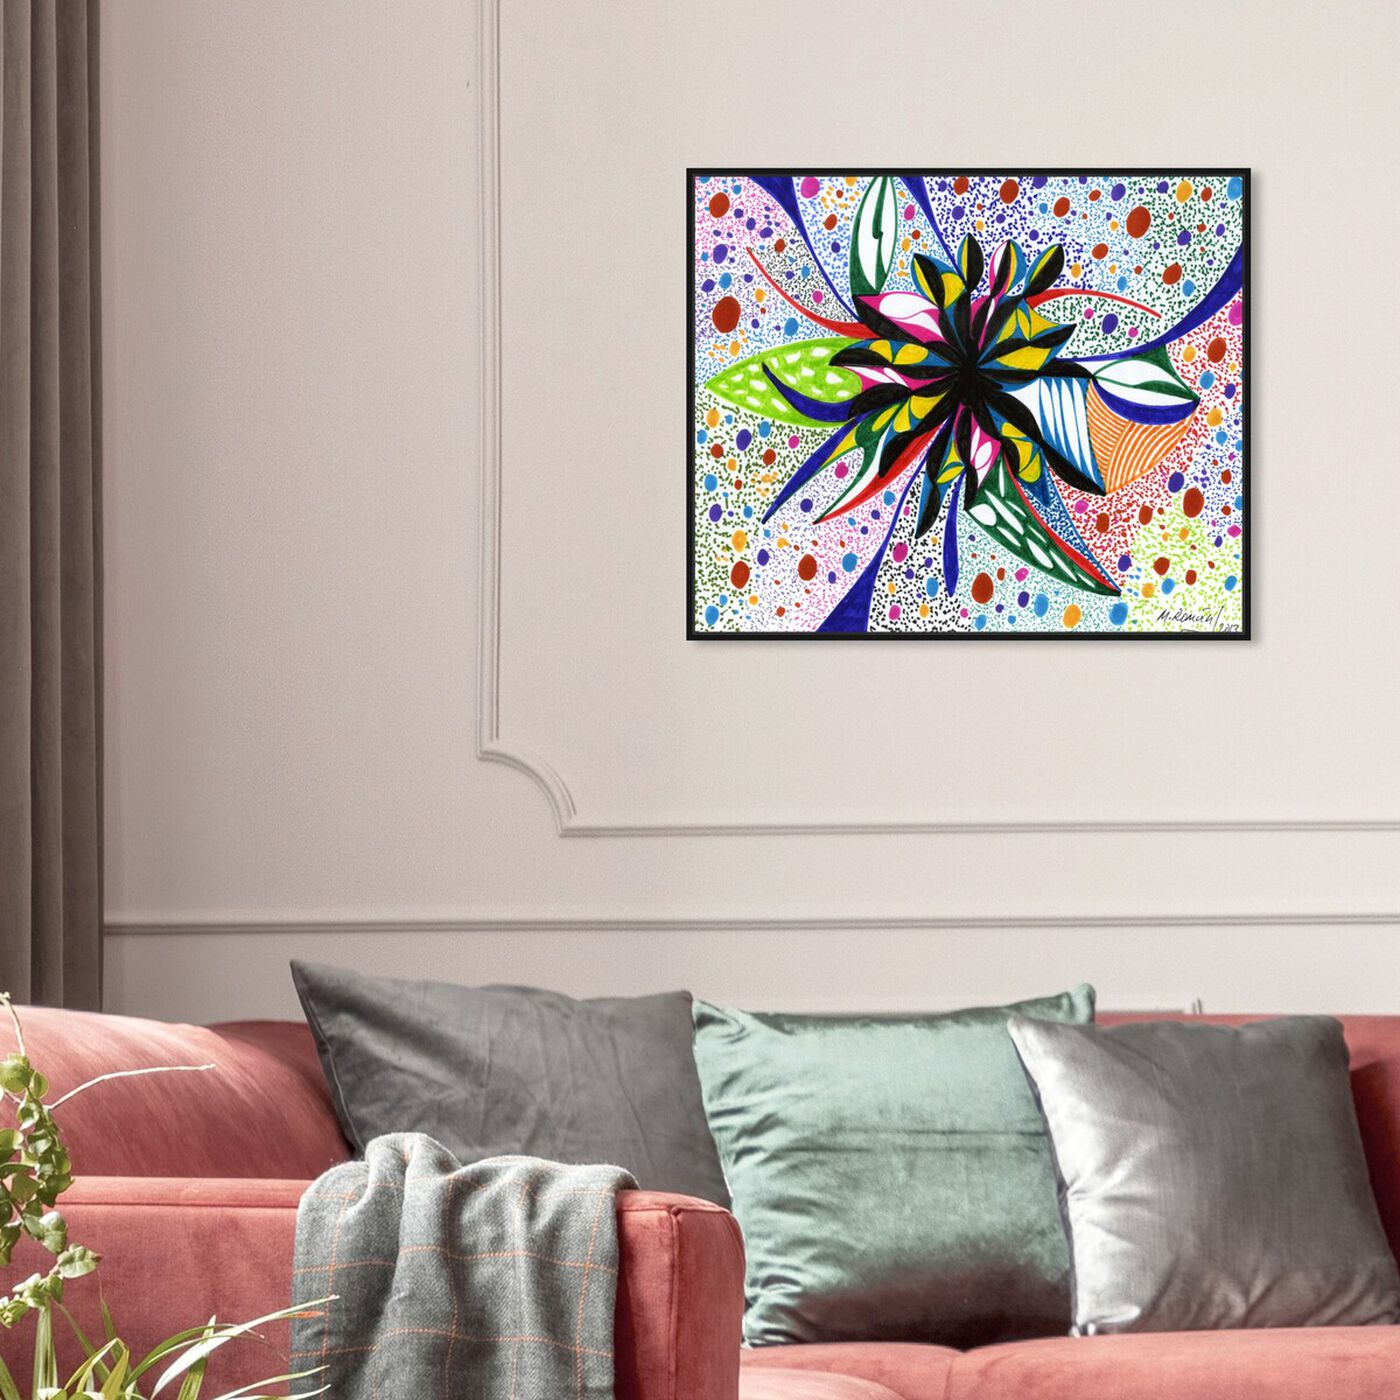 Hanging view of Bromeliad featuring abstract and flowers art.